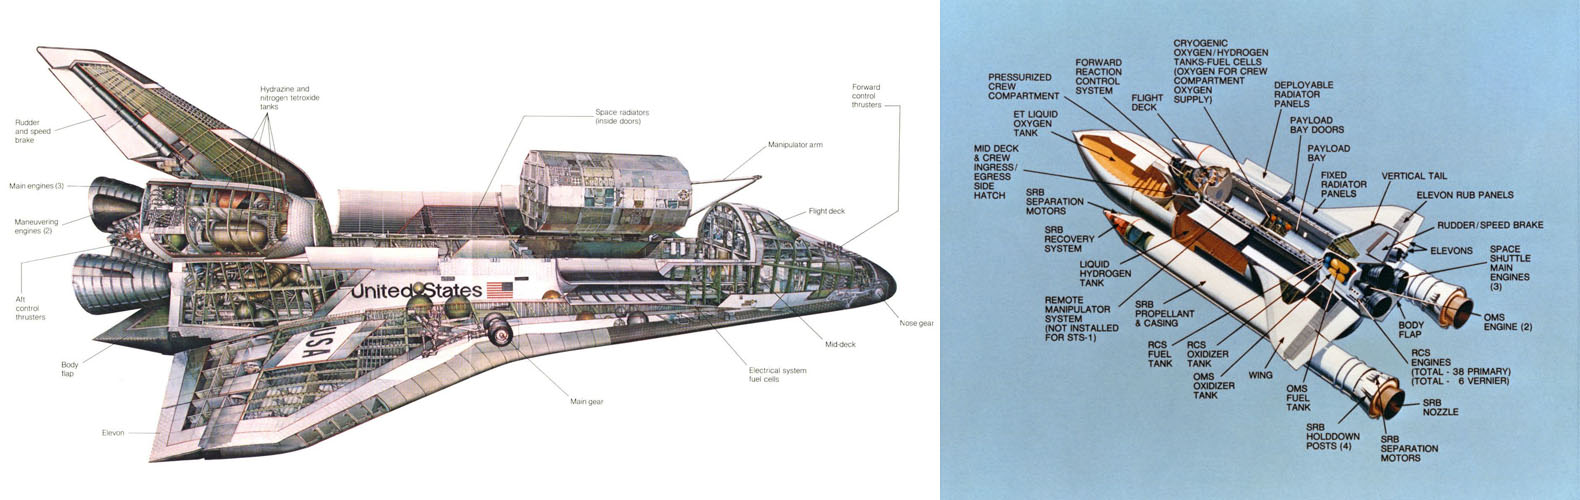 april 12 1981 35 years since the maiden space shuttle launch rh spaceflightnow com space shuttle diagram Space Shuttle Parts